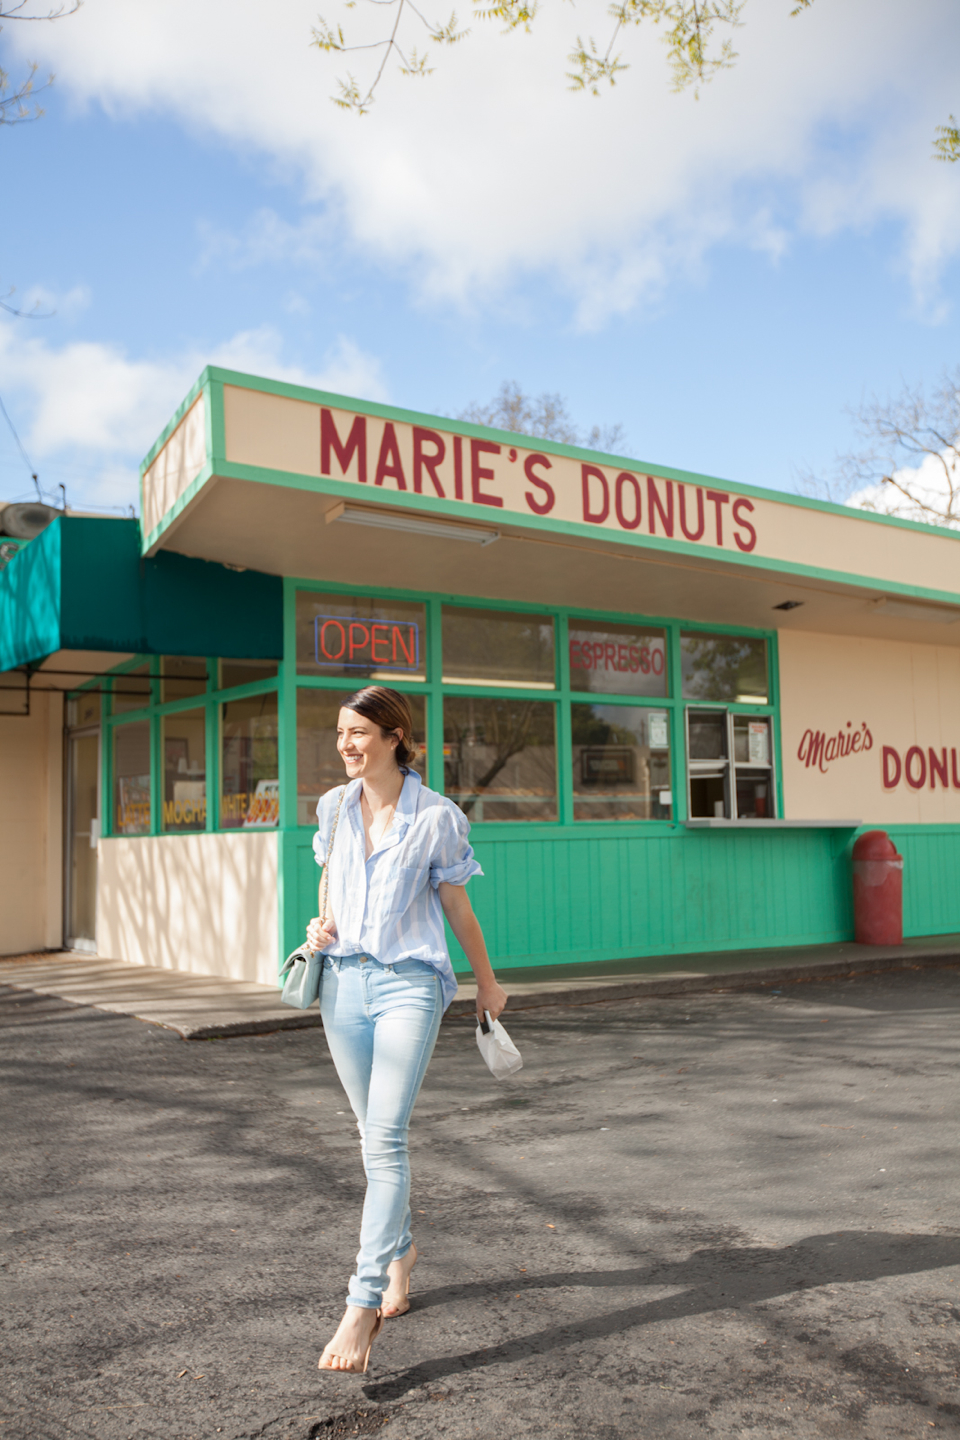 maries-donuts-sacramento-california-01